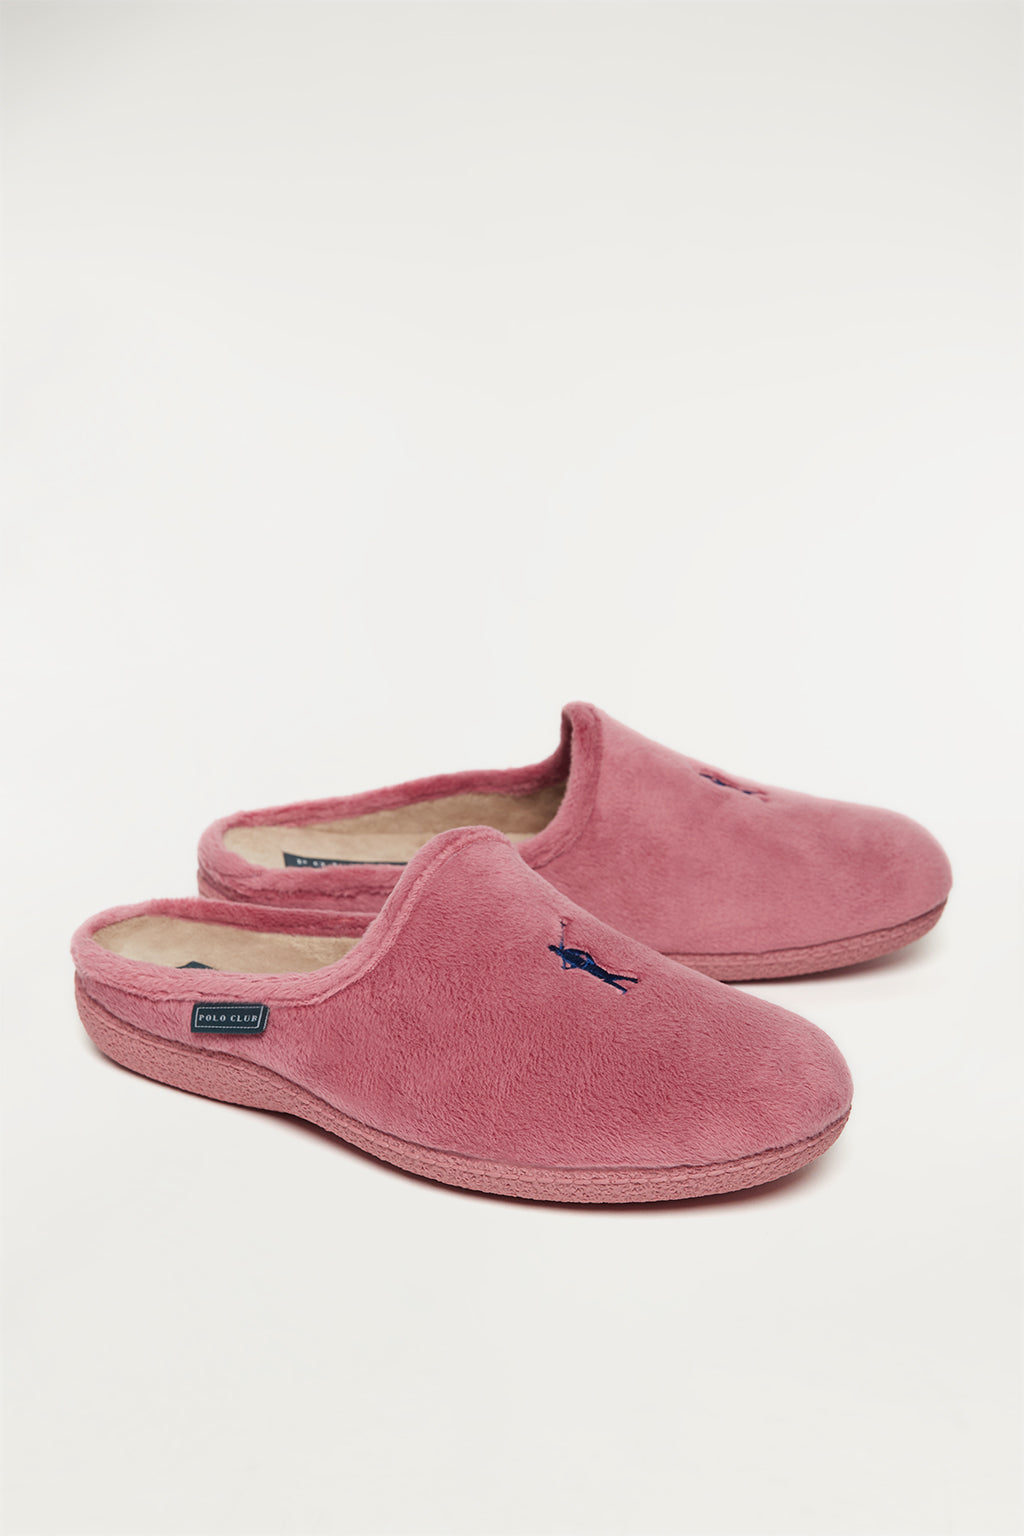 Pink women's sleepers with logo